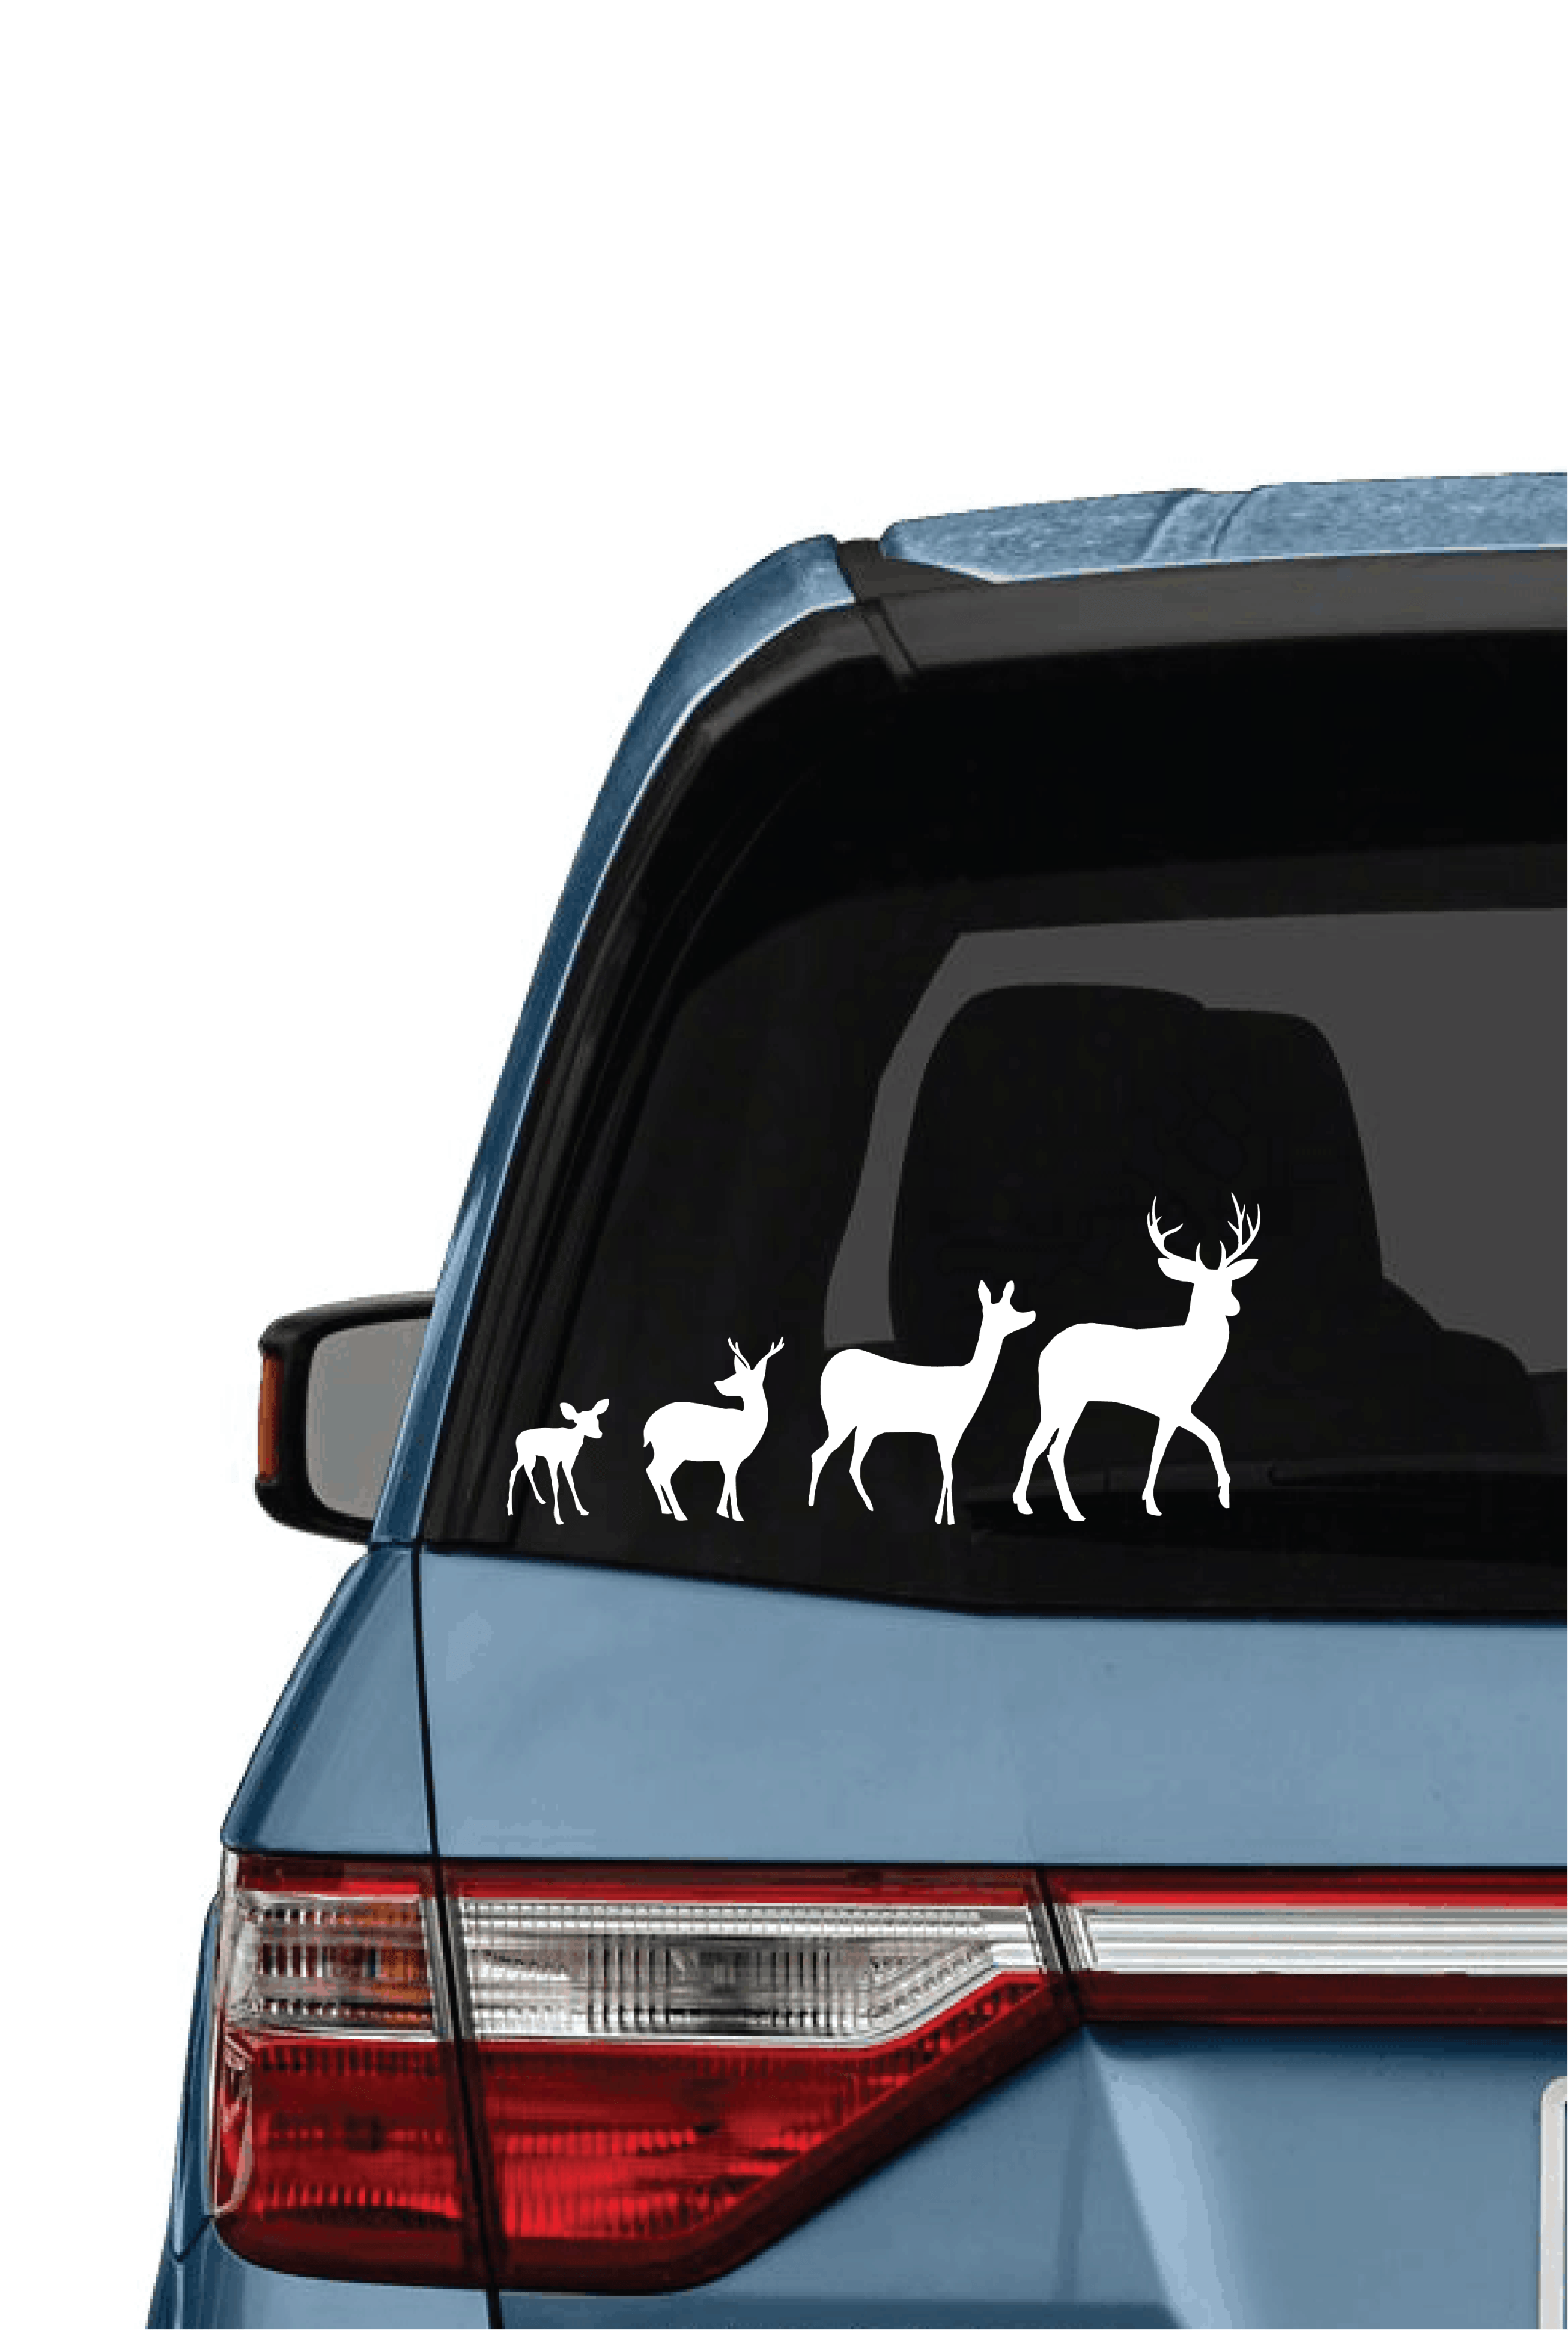 How To Make Car Stickers Family Car Decals Car Decals Vinyl Vinyl Car Stickers [ 3878 x 2610 Pixel ]